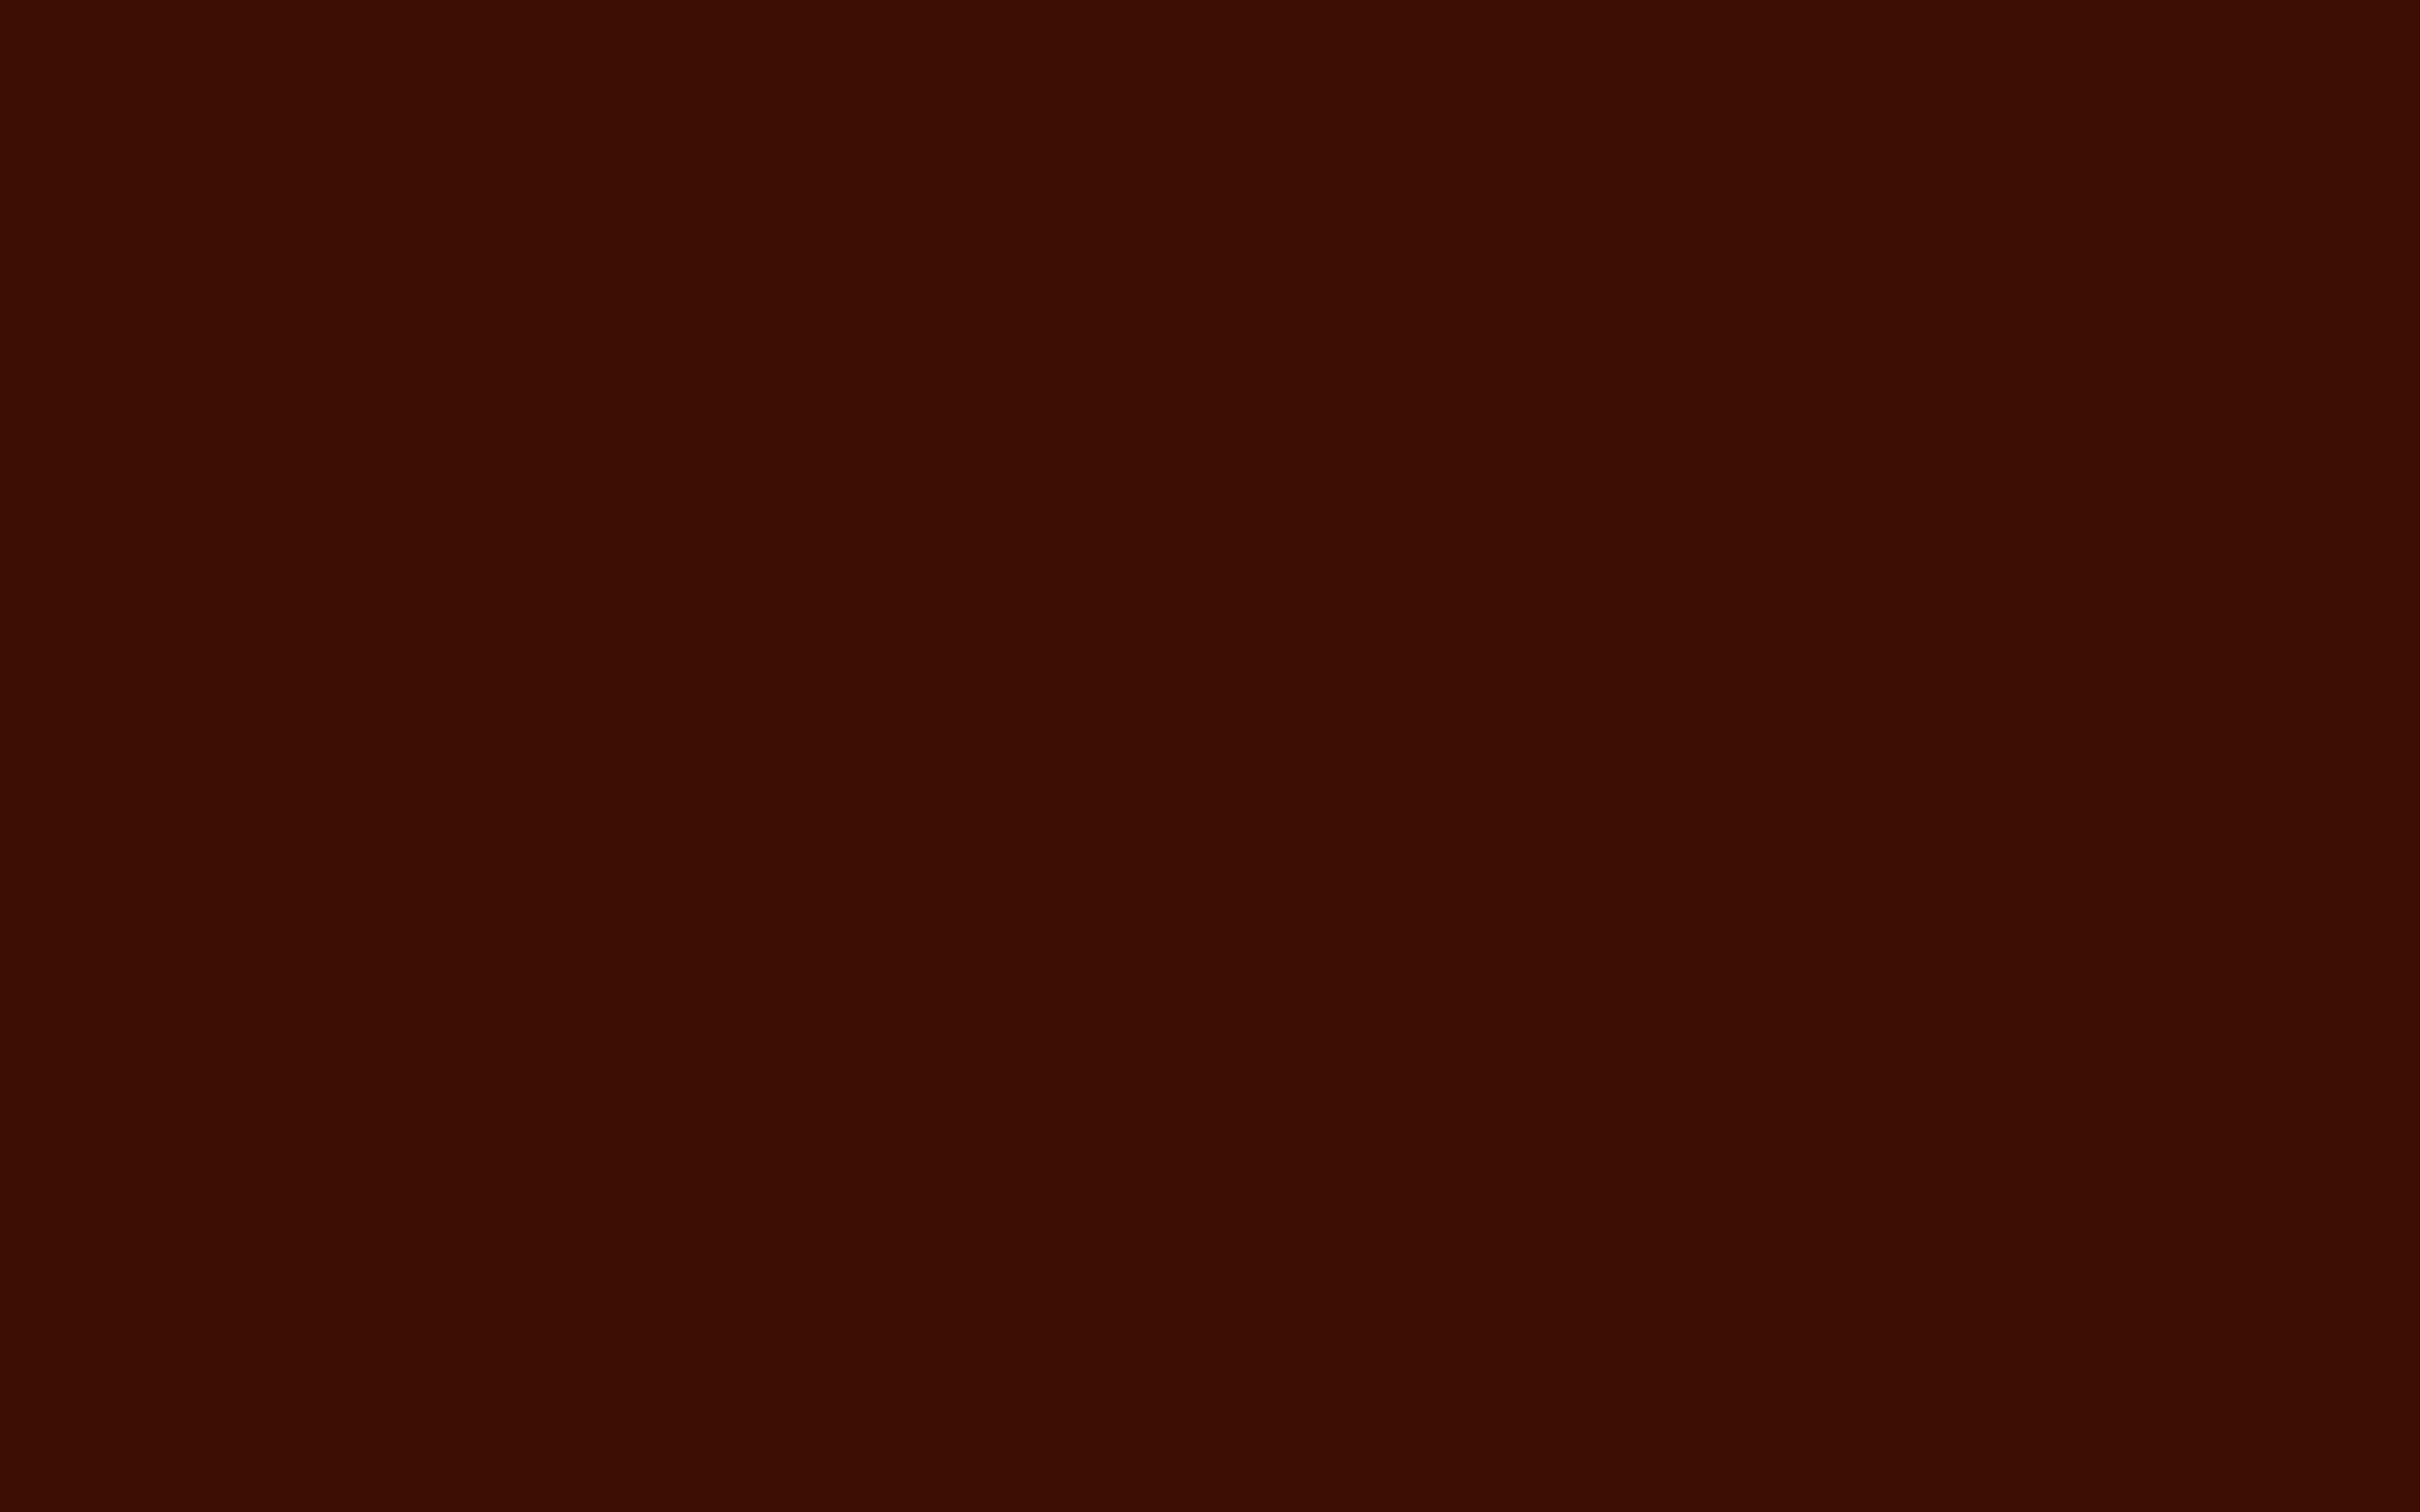 2560x1600 Black Bean Solid Color Background